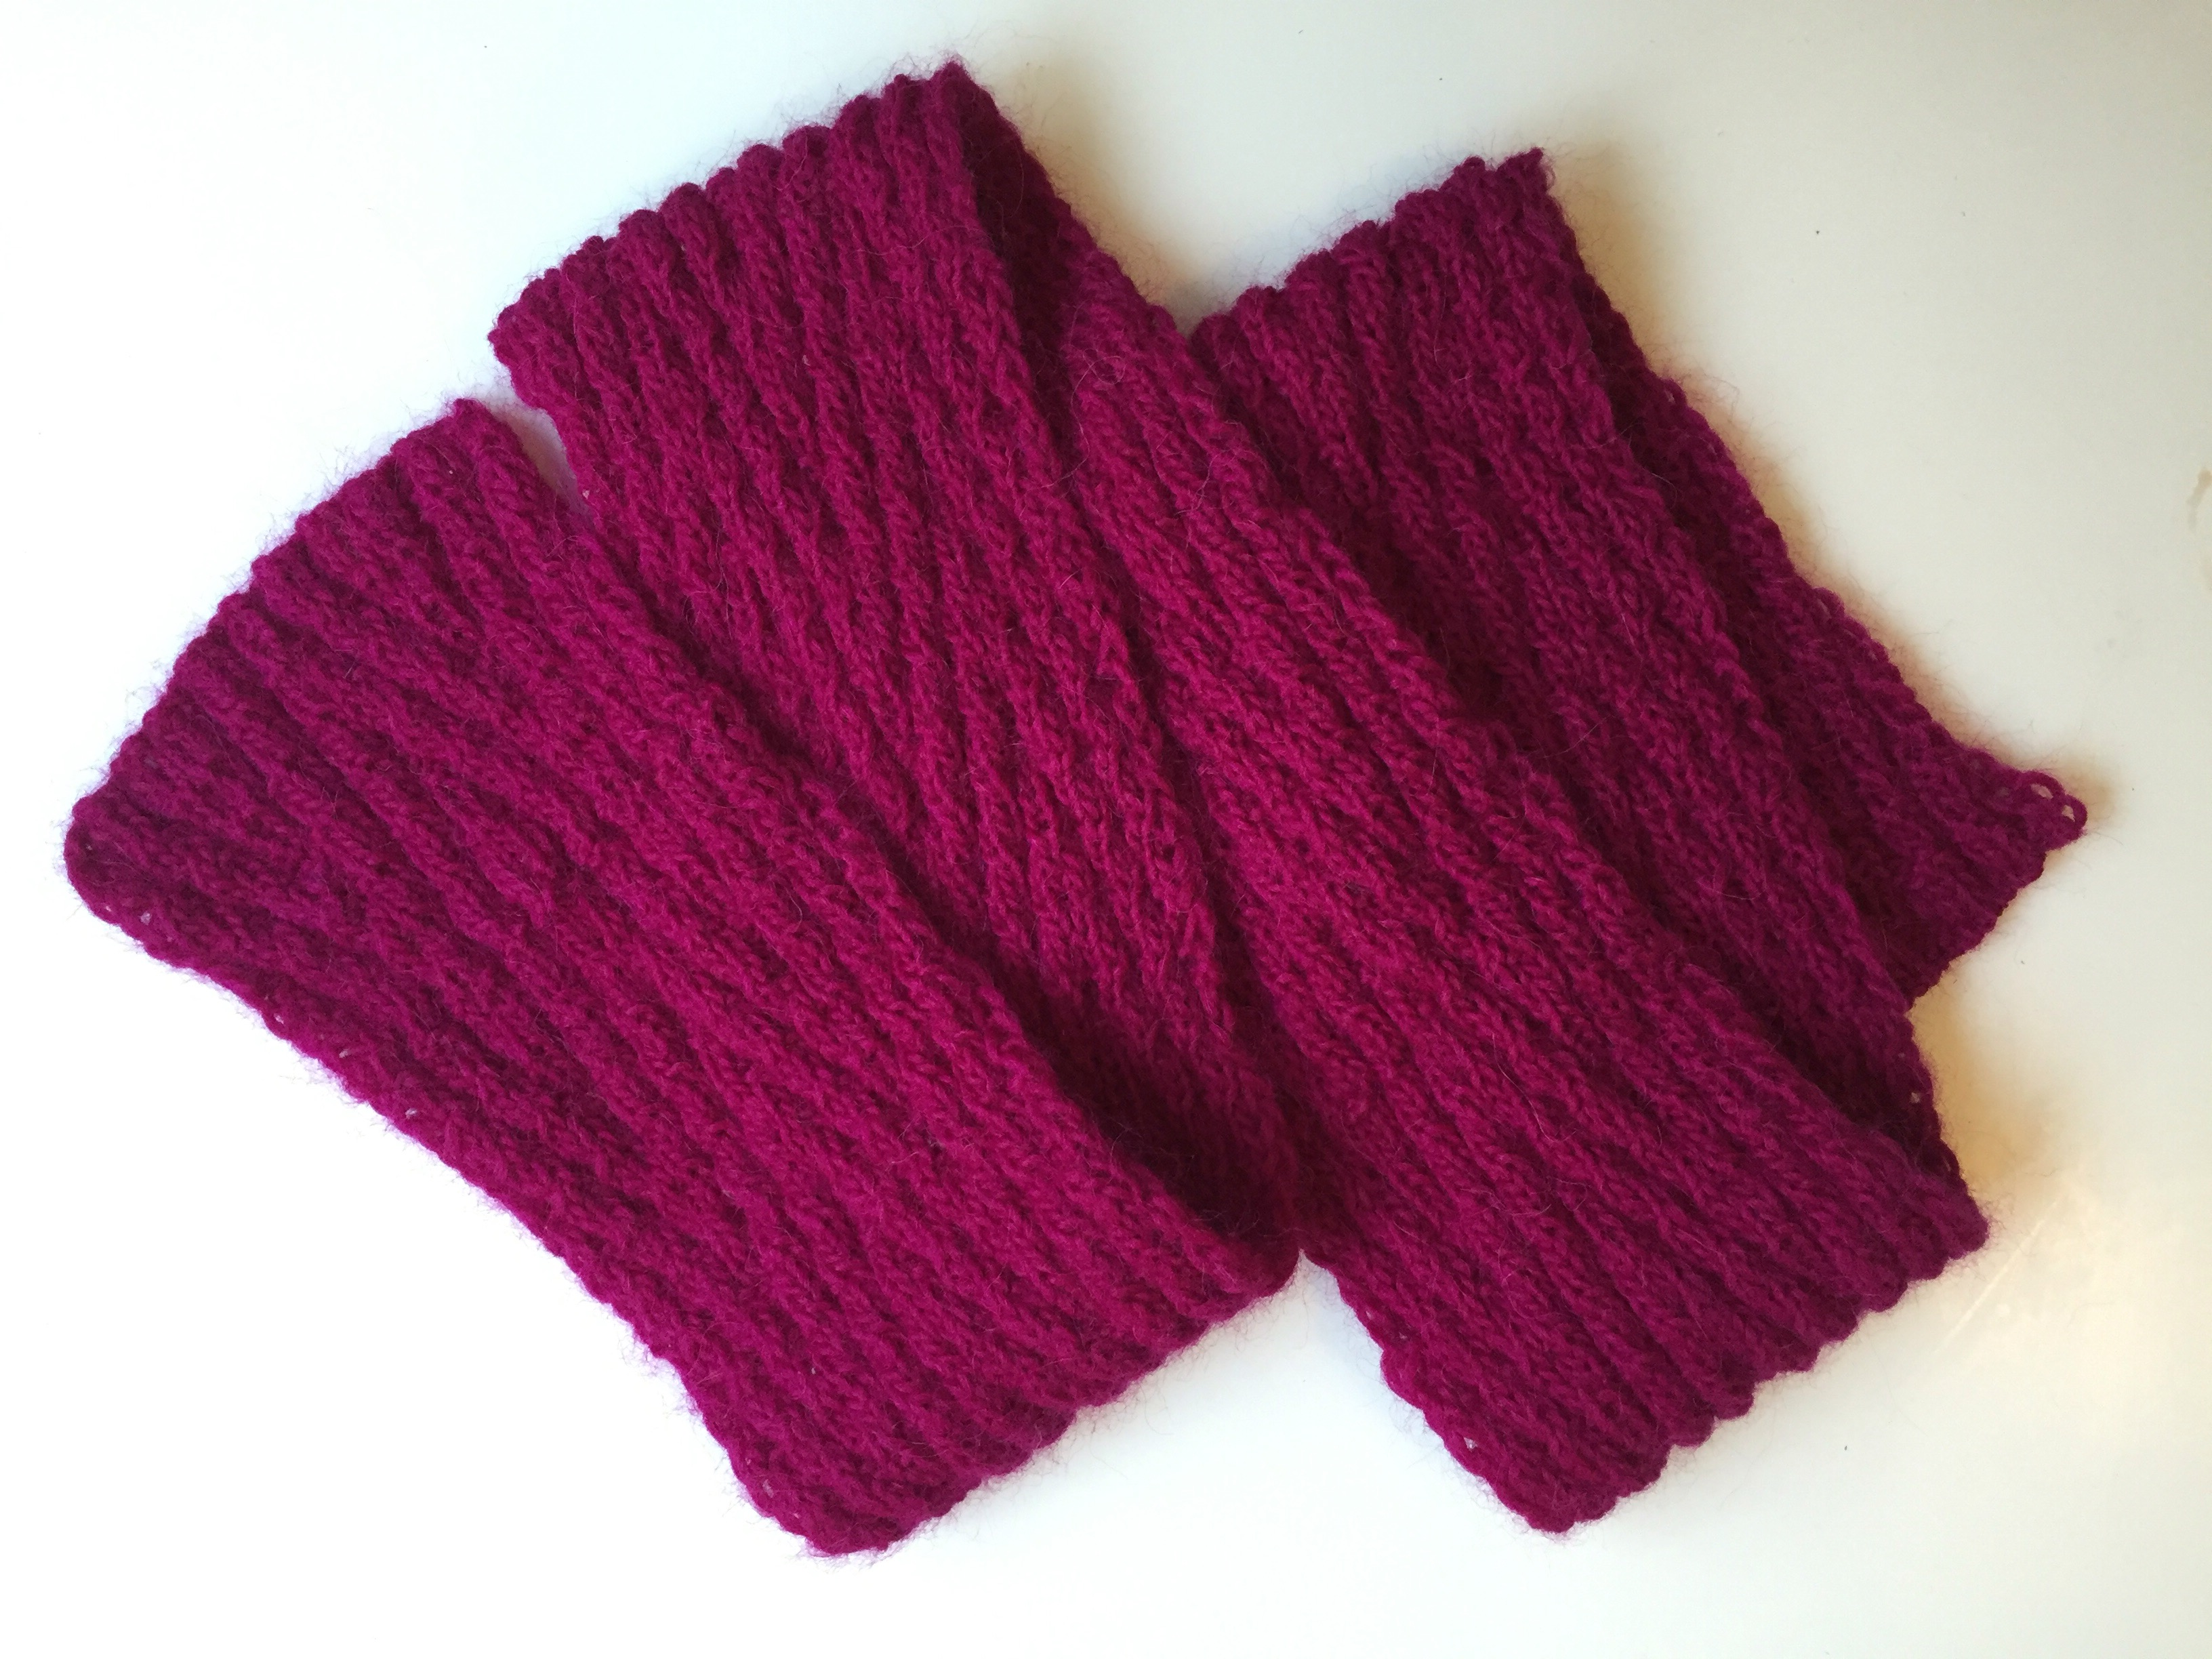 Reversible Knitting Patterns For Scarves Amazing Inspiration Design